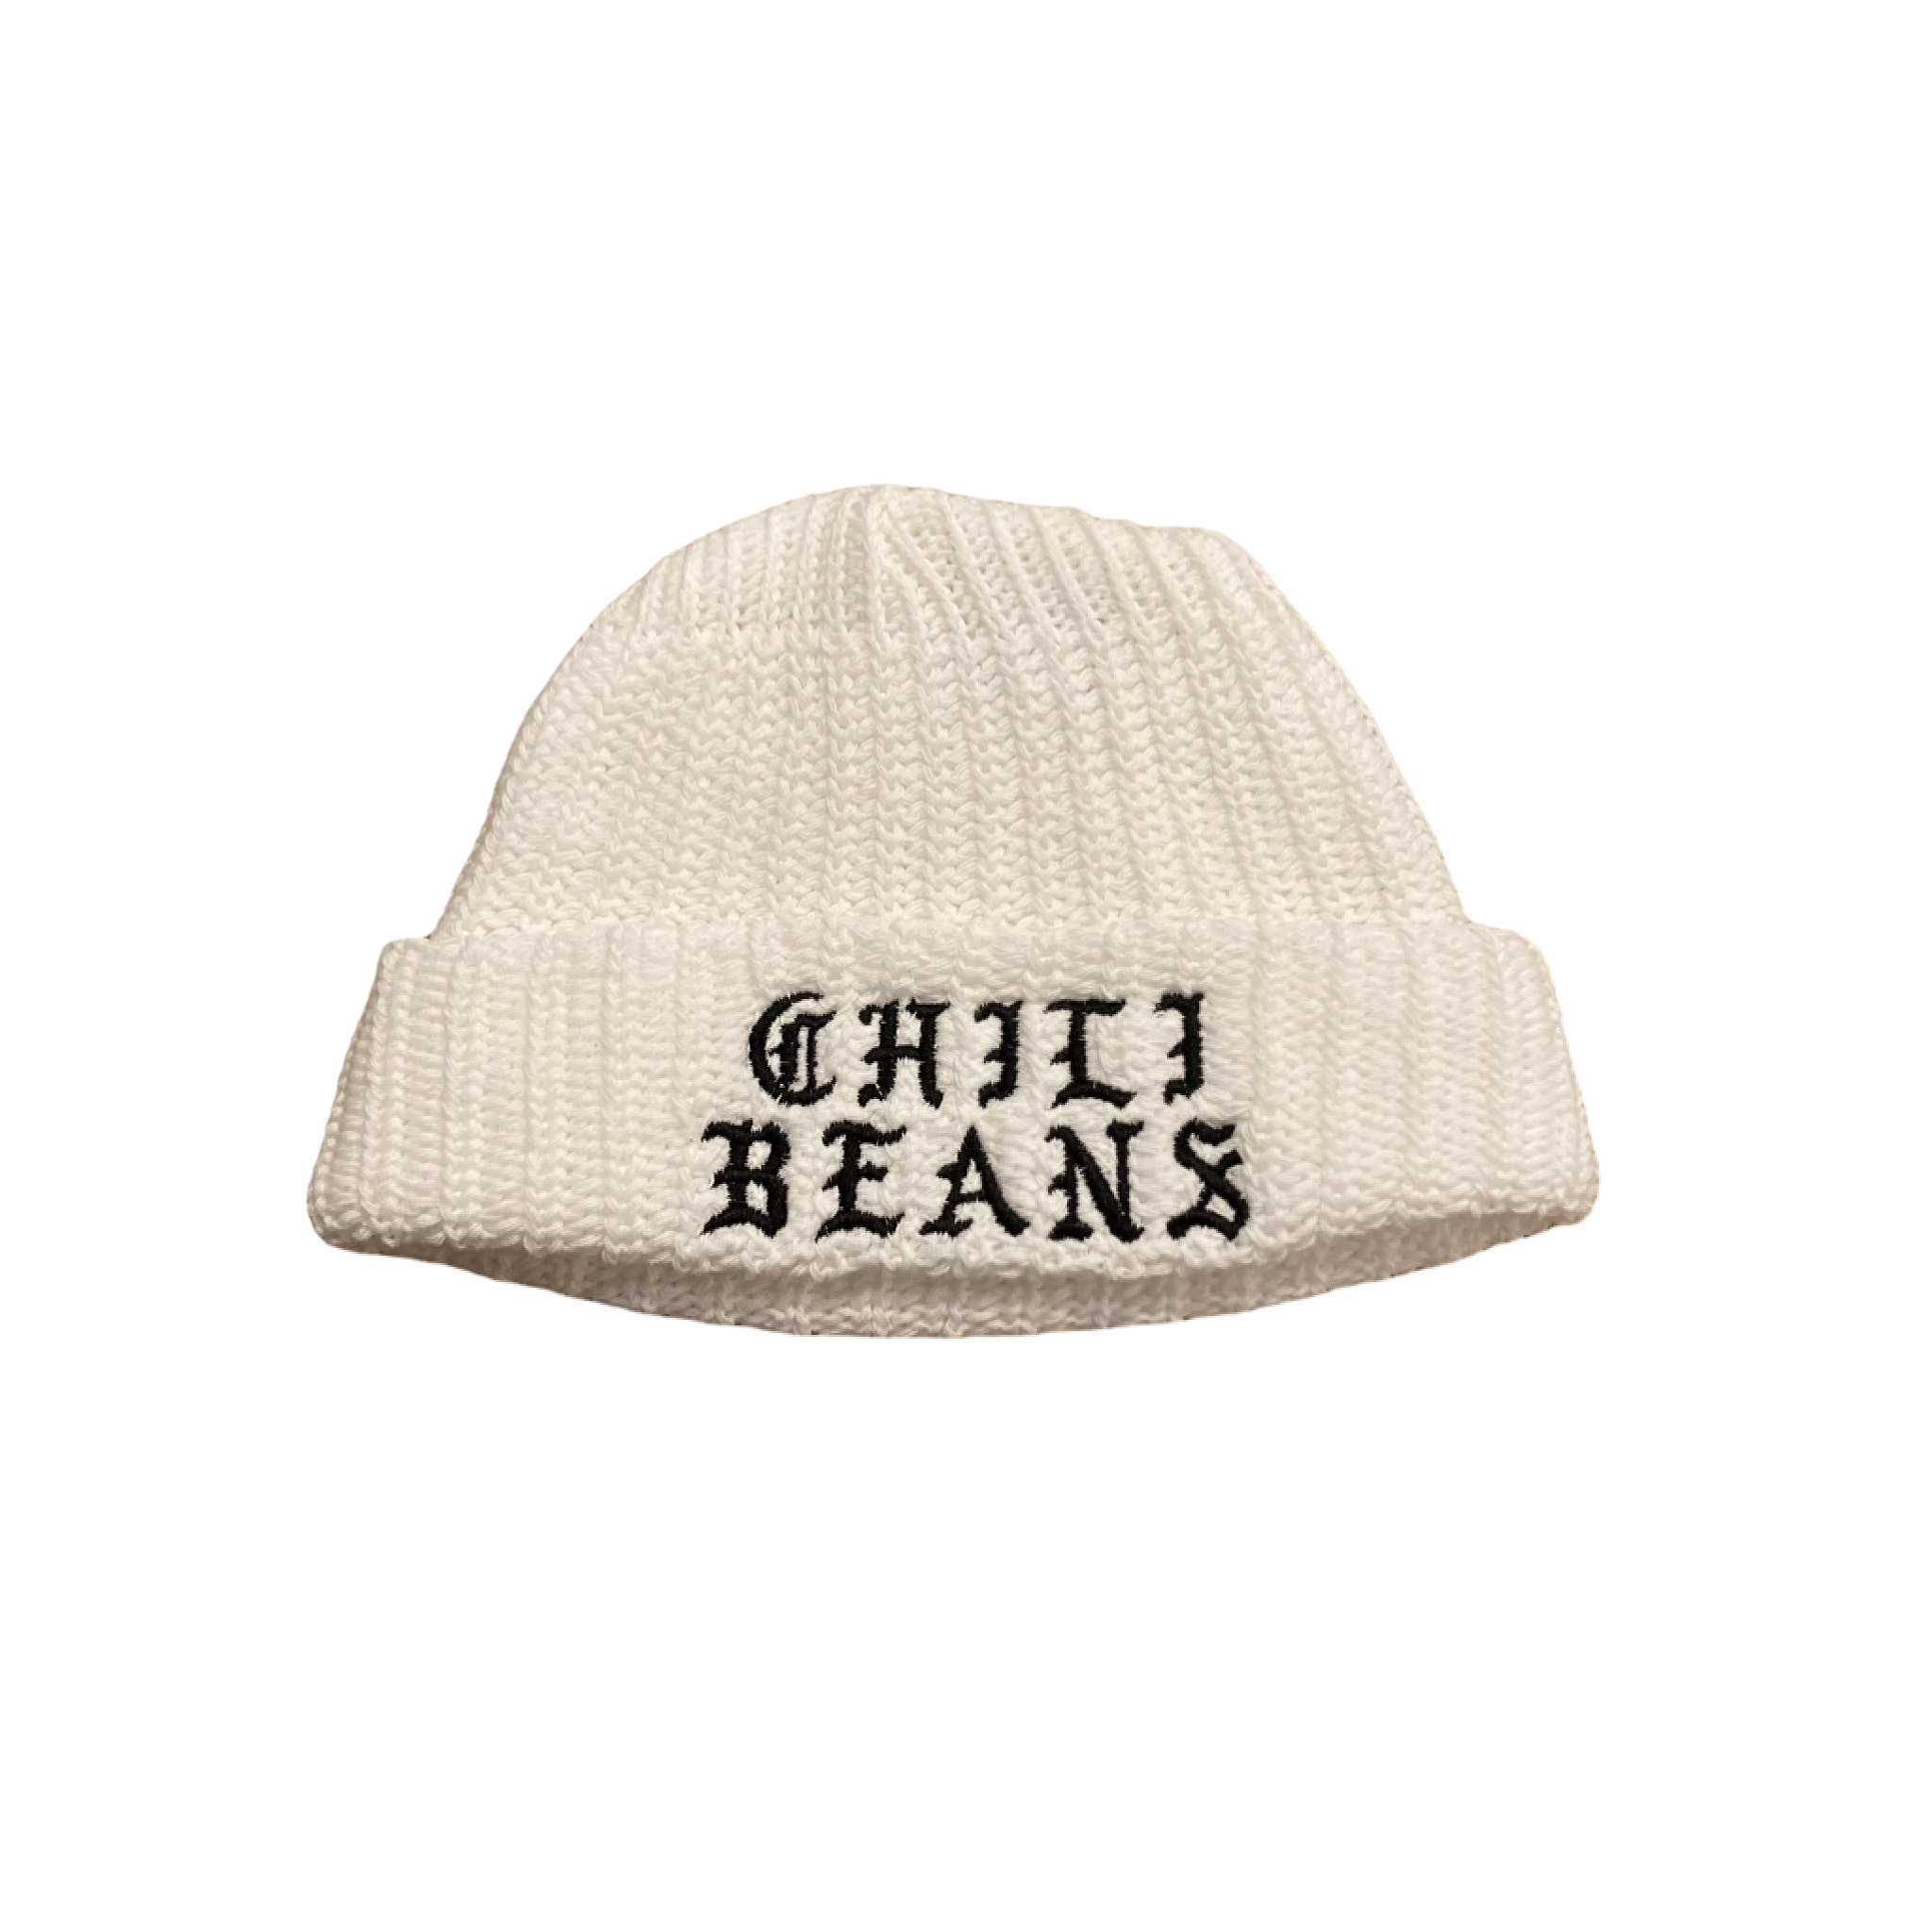 CHILI BEANS #Casual Watch Cap White